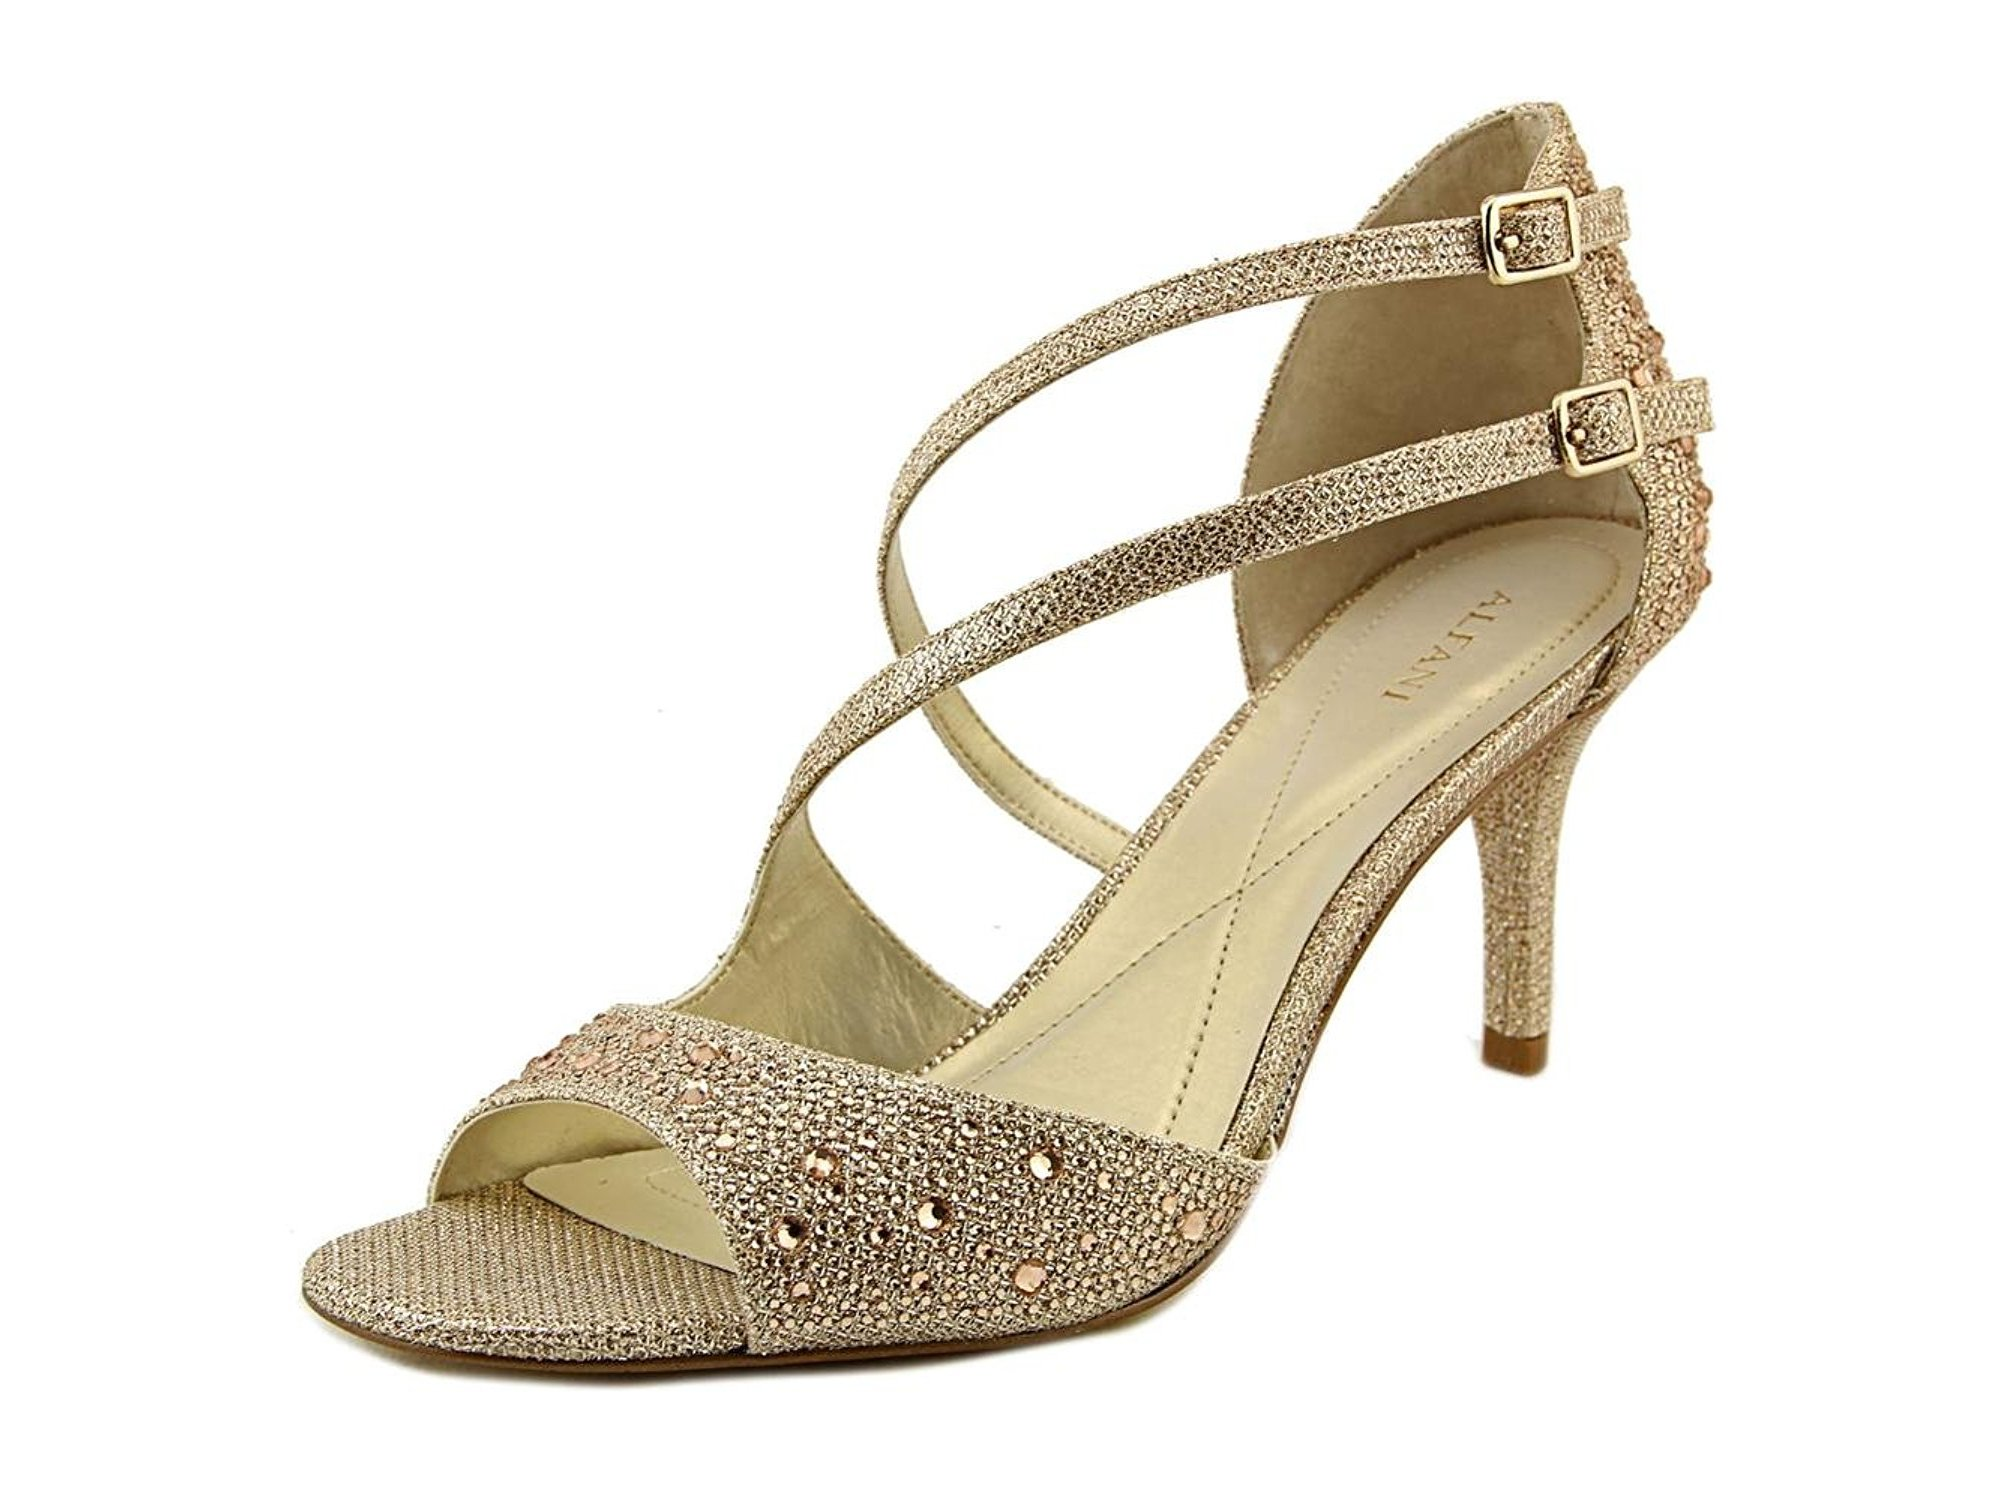 79ef2d30dde01 A35 Cremena Sparkle Strappy Dress Sandals